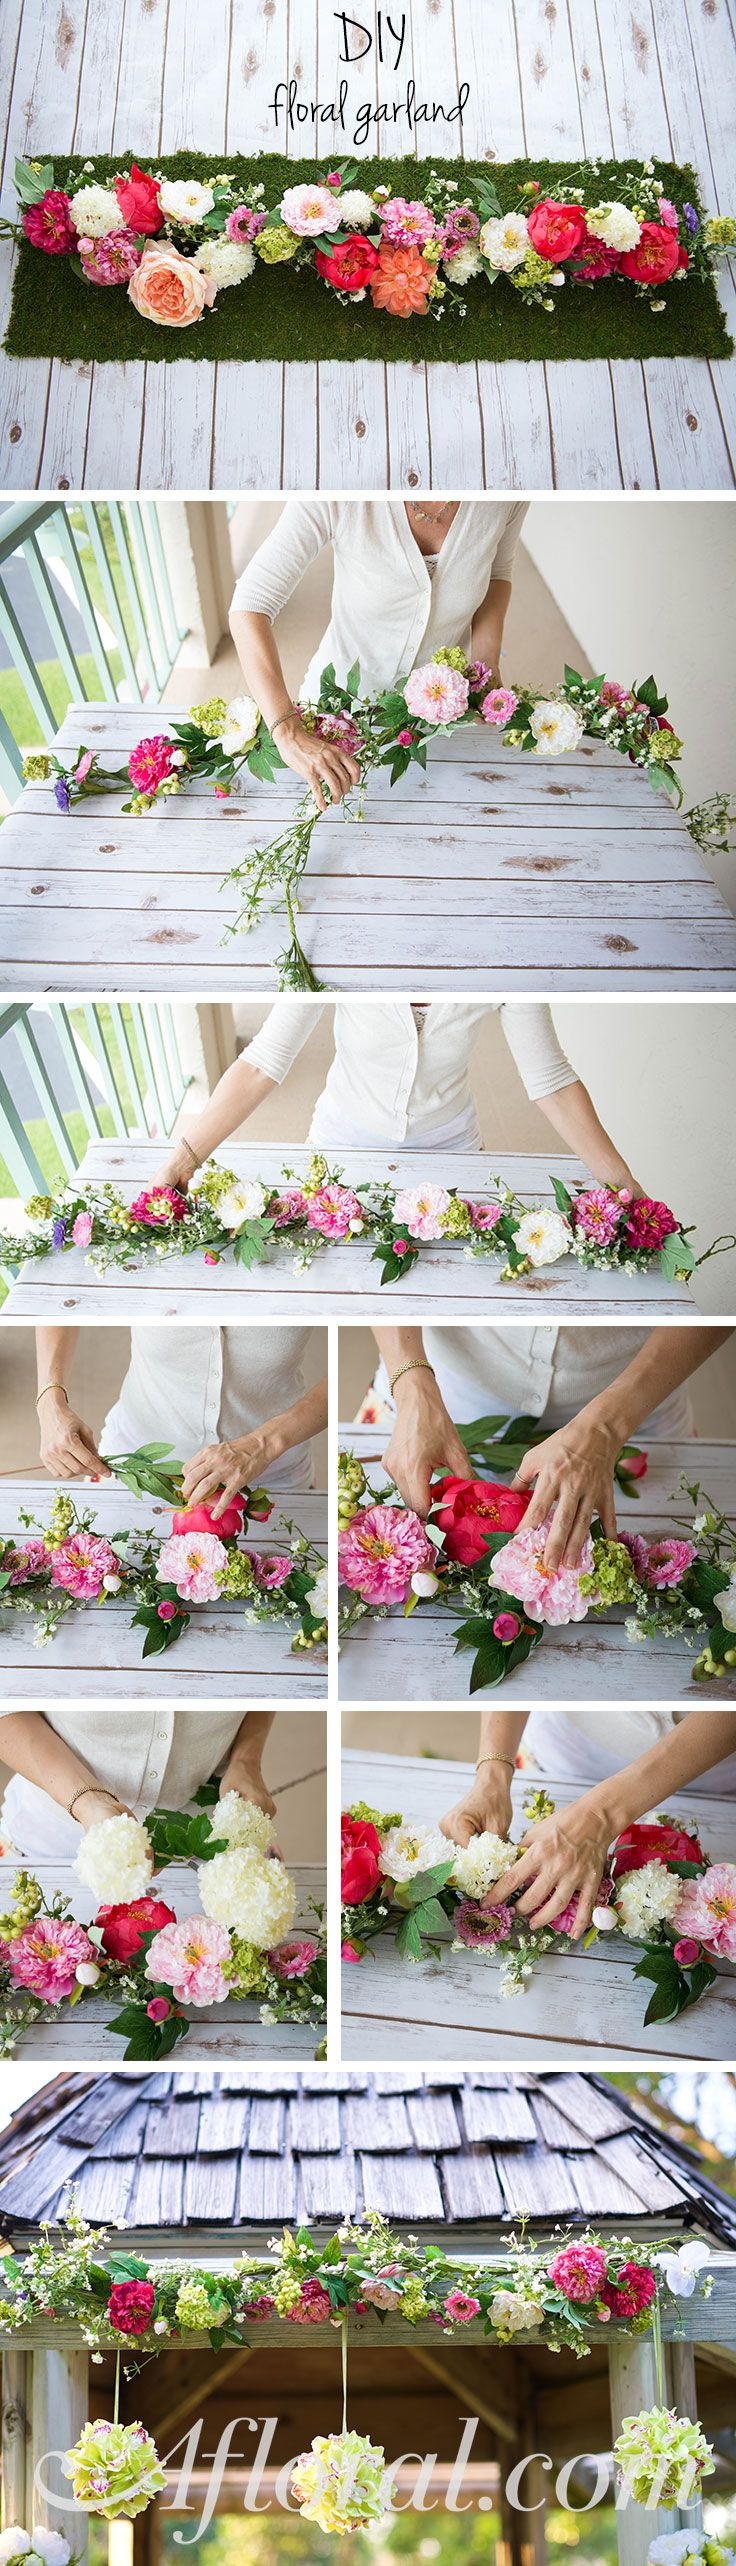 Diy garland if you use it on your table or hang it over the alter